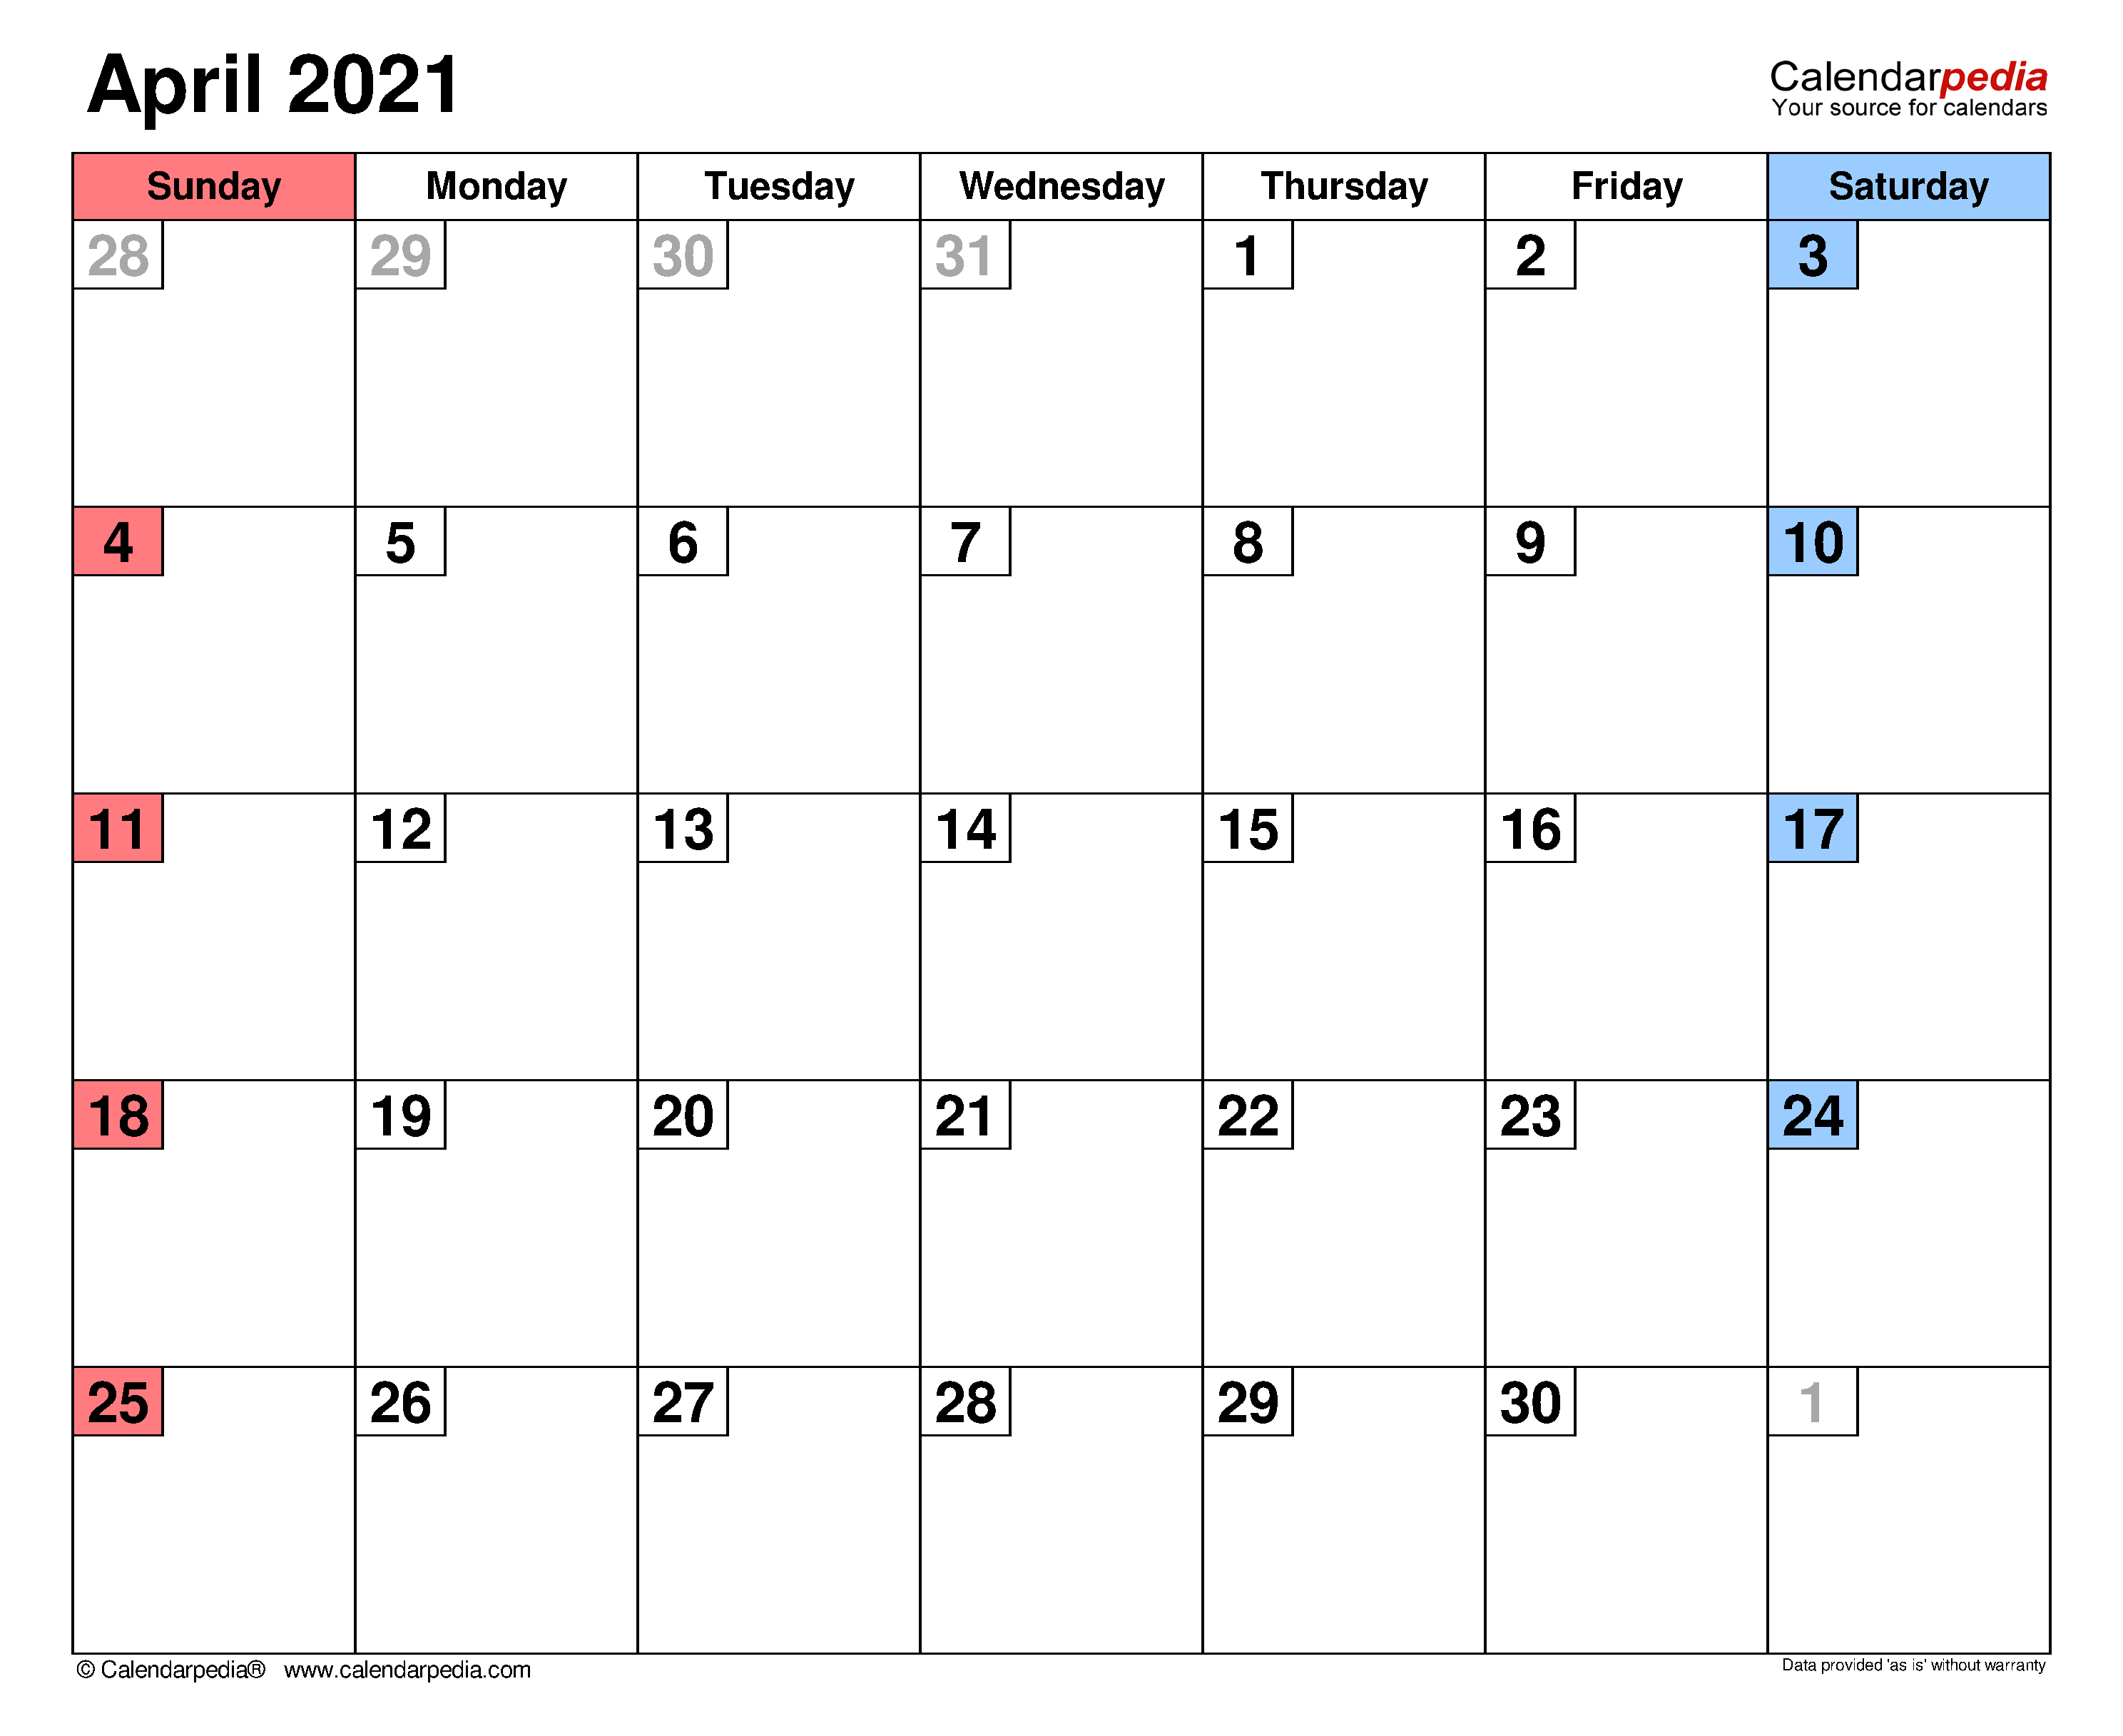 April 2021 Calendar | Templates For Word, Excel And Pdf